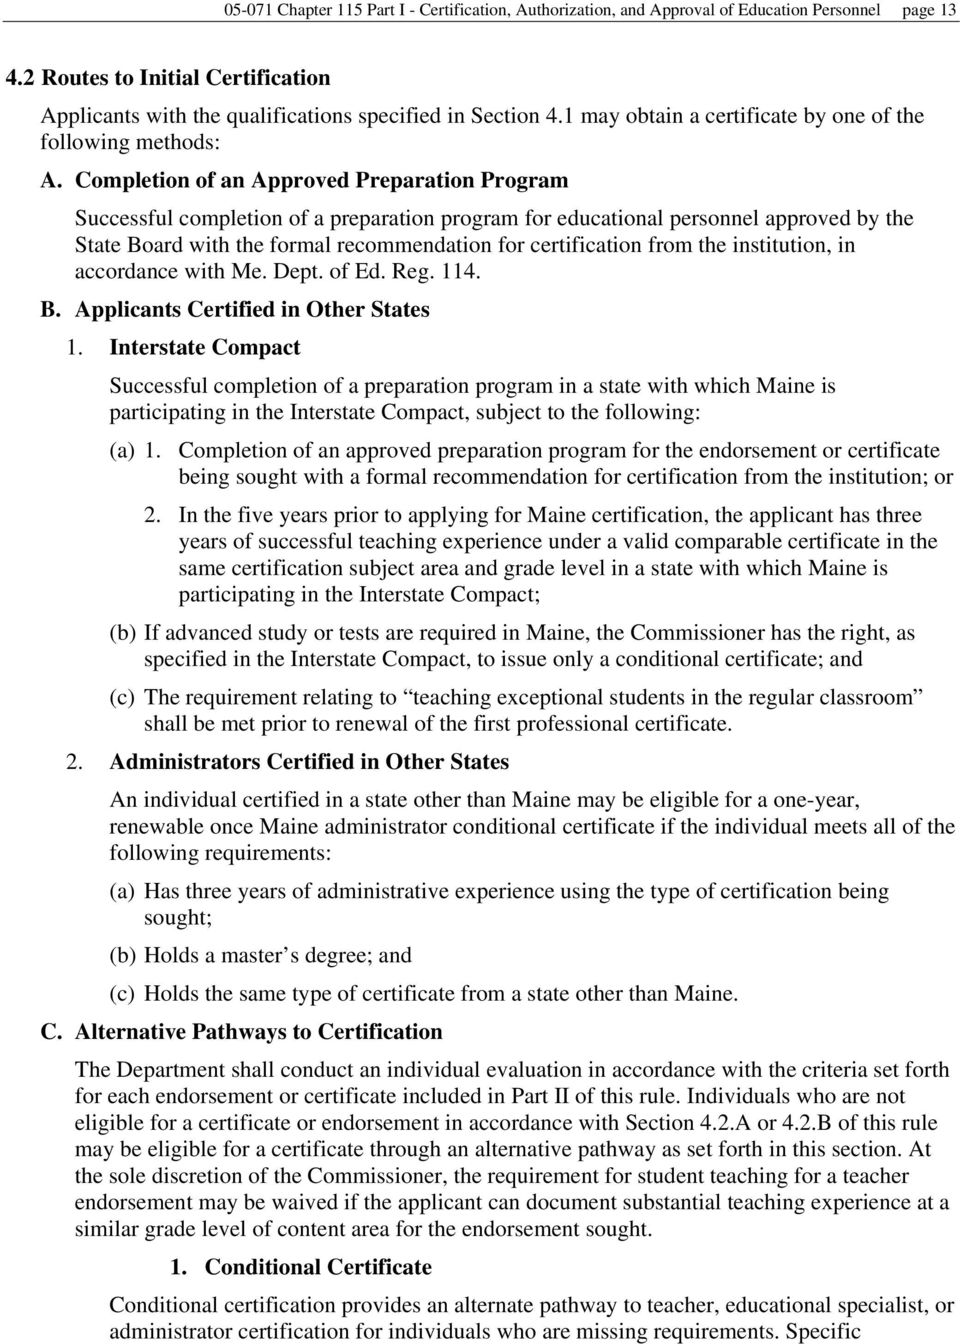 Completion of an Approved Preparation Program Successful completion of a preparation program for educational personnel approved by the State Board with the formal recommendation for certification